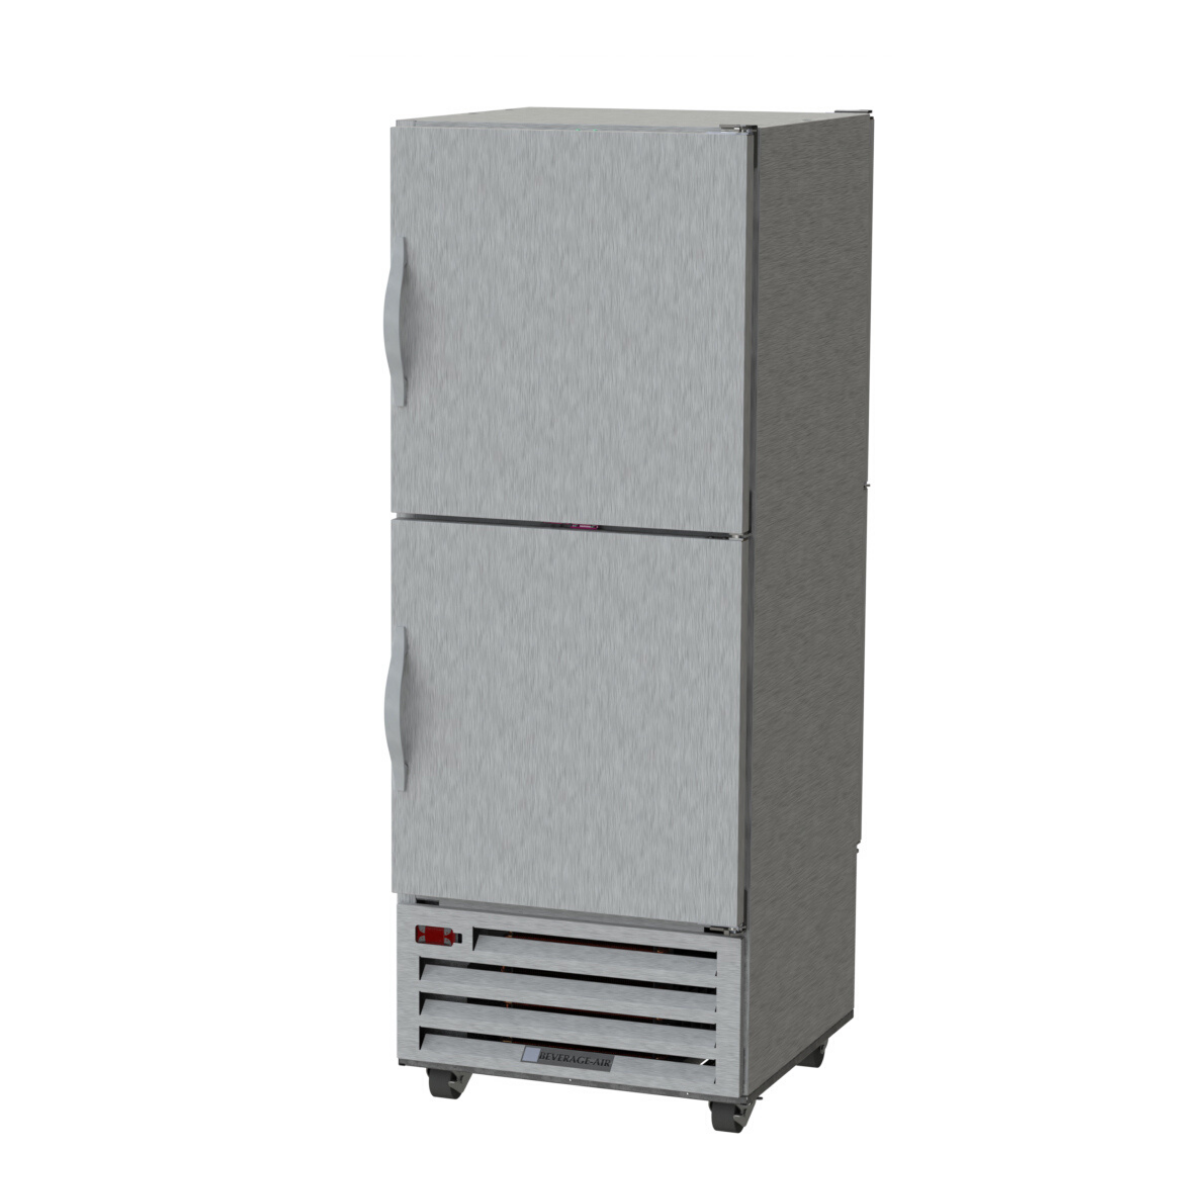 Beverage Air RI18HC-HS Reach-in Refrigerator